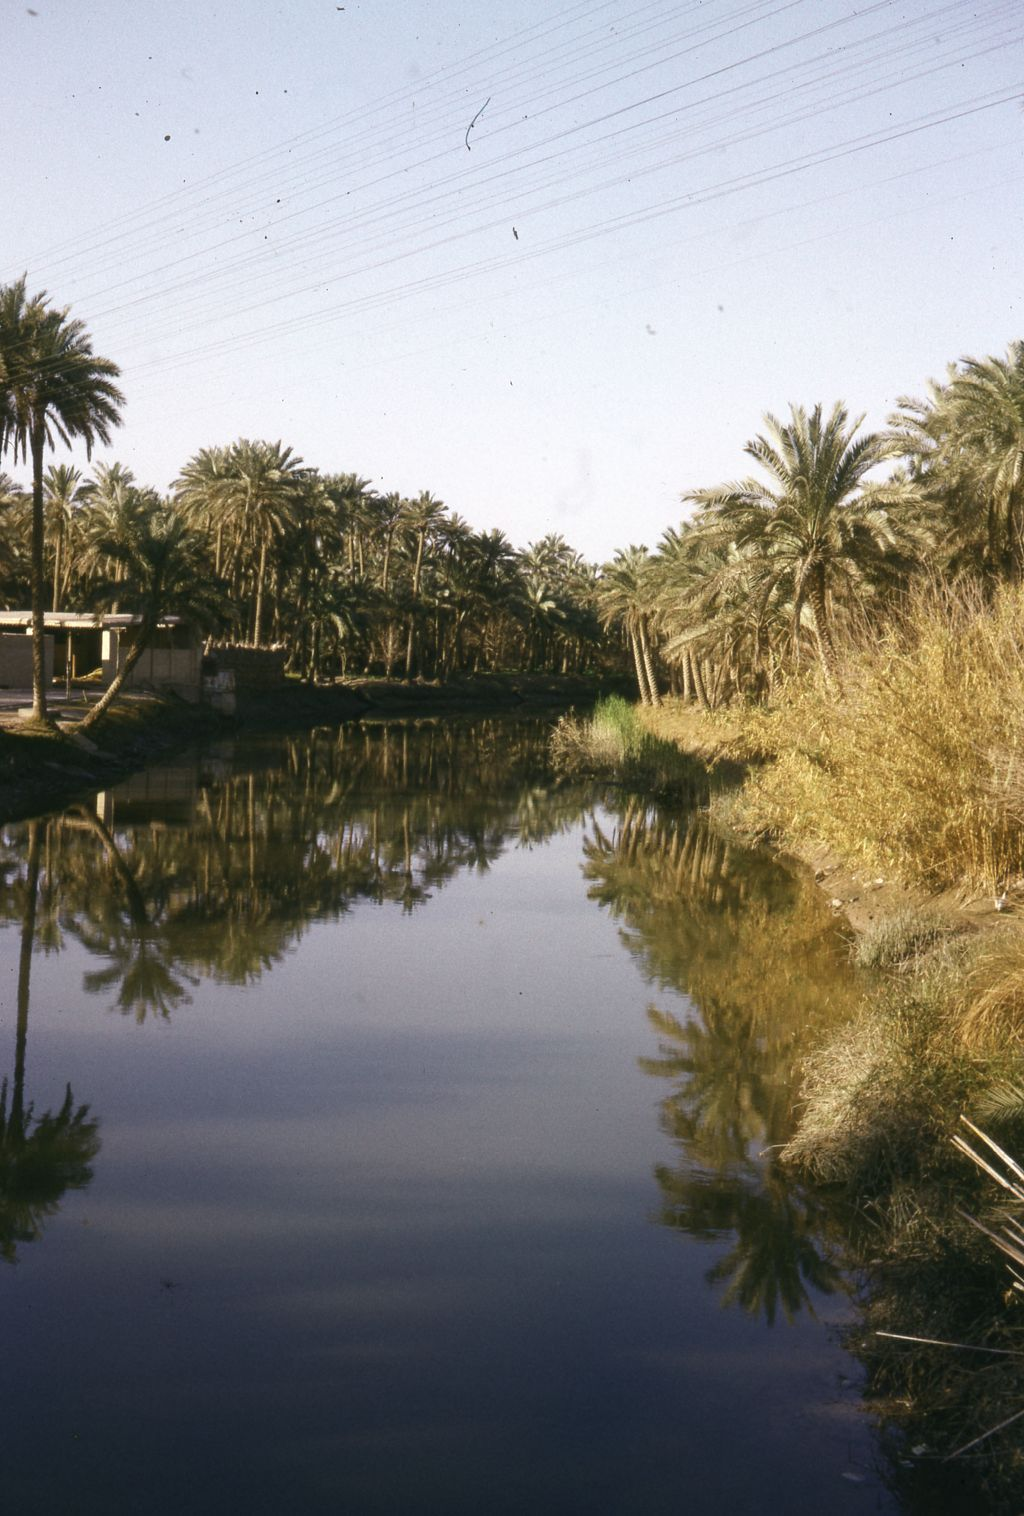 River bank near the marshlands of Southern Iraq